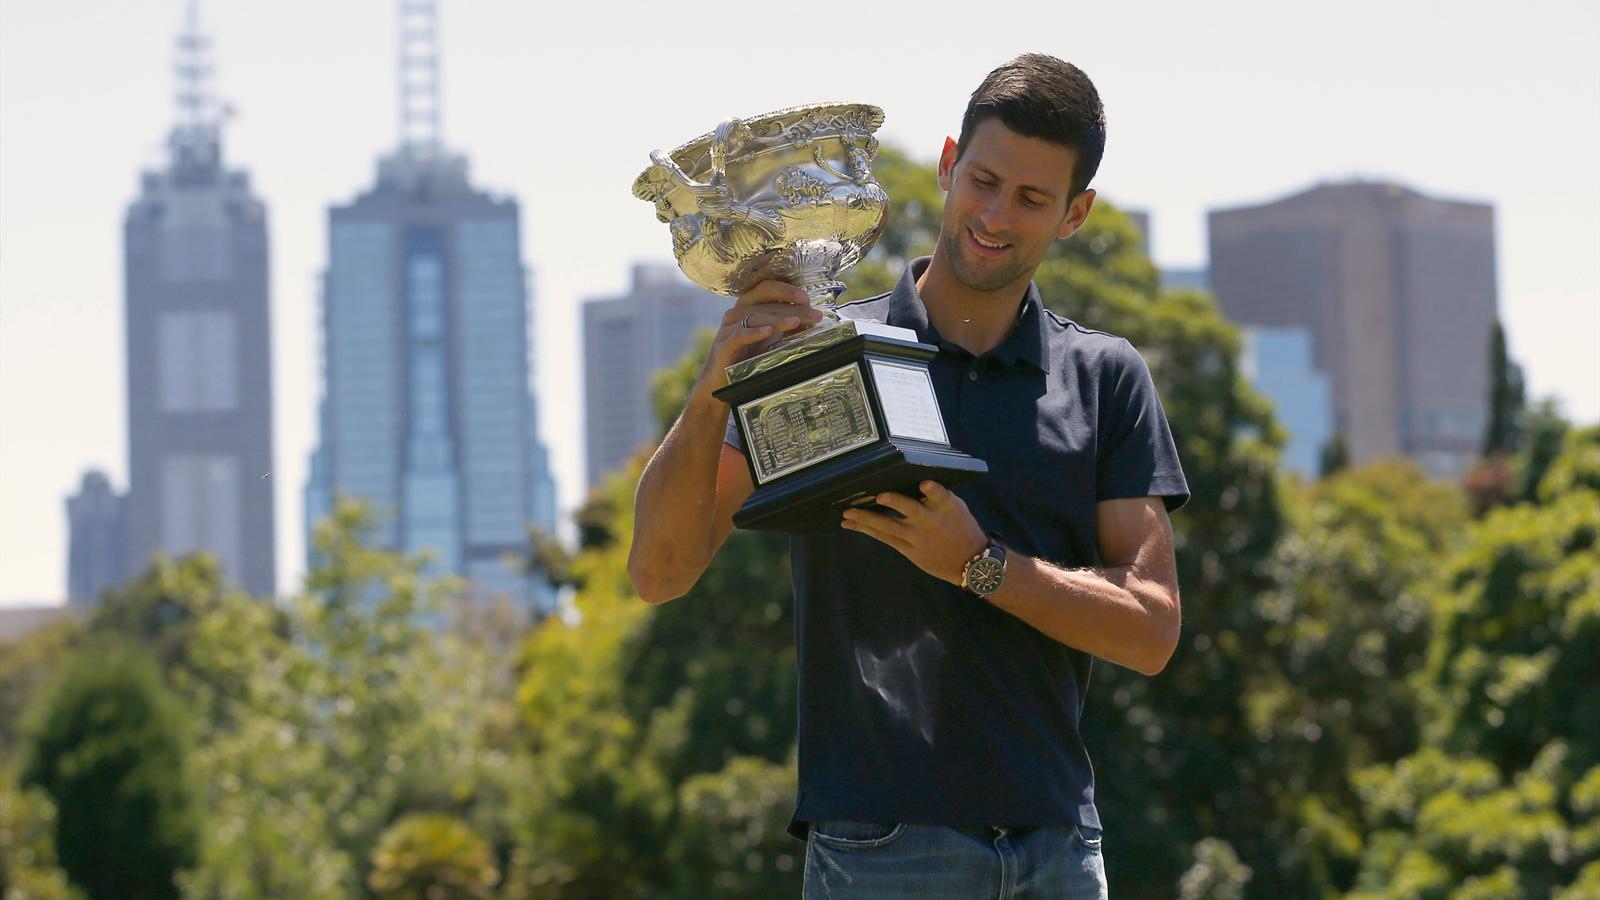 Serbia's Novak Djokovic looks at the men's singles trophy during a photocall, a day after winning his final match at the Australian Open